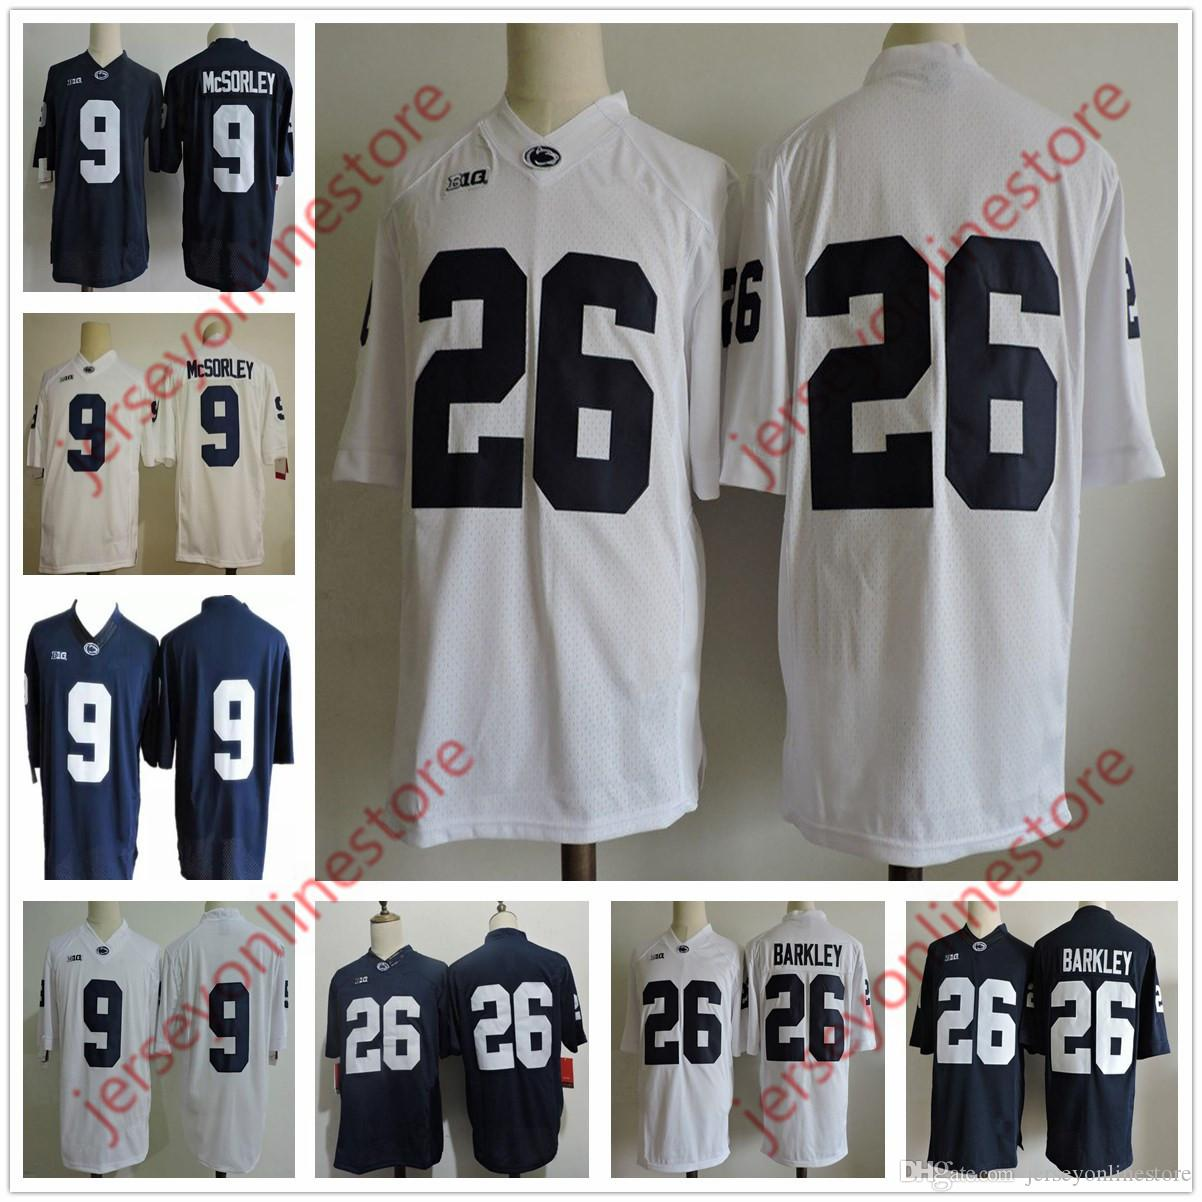 outlet store 52187 fb5f4 Mens Penn State Nittany Lions 26# Saquon Barkley College Football Jerseys  Navy Blue White 9# Trace McSorley Jersey